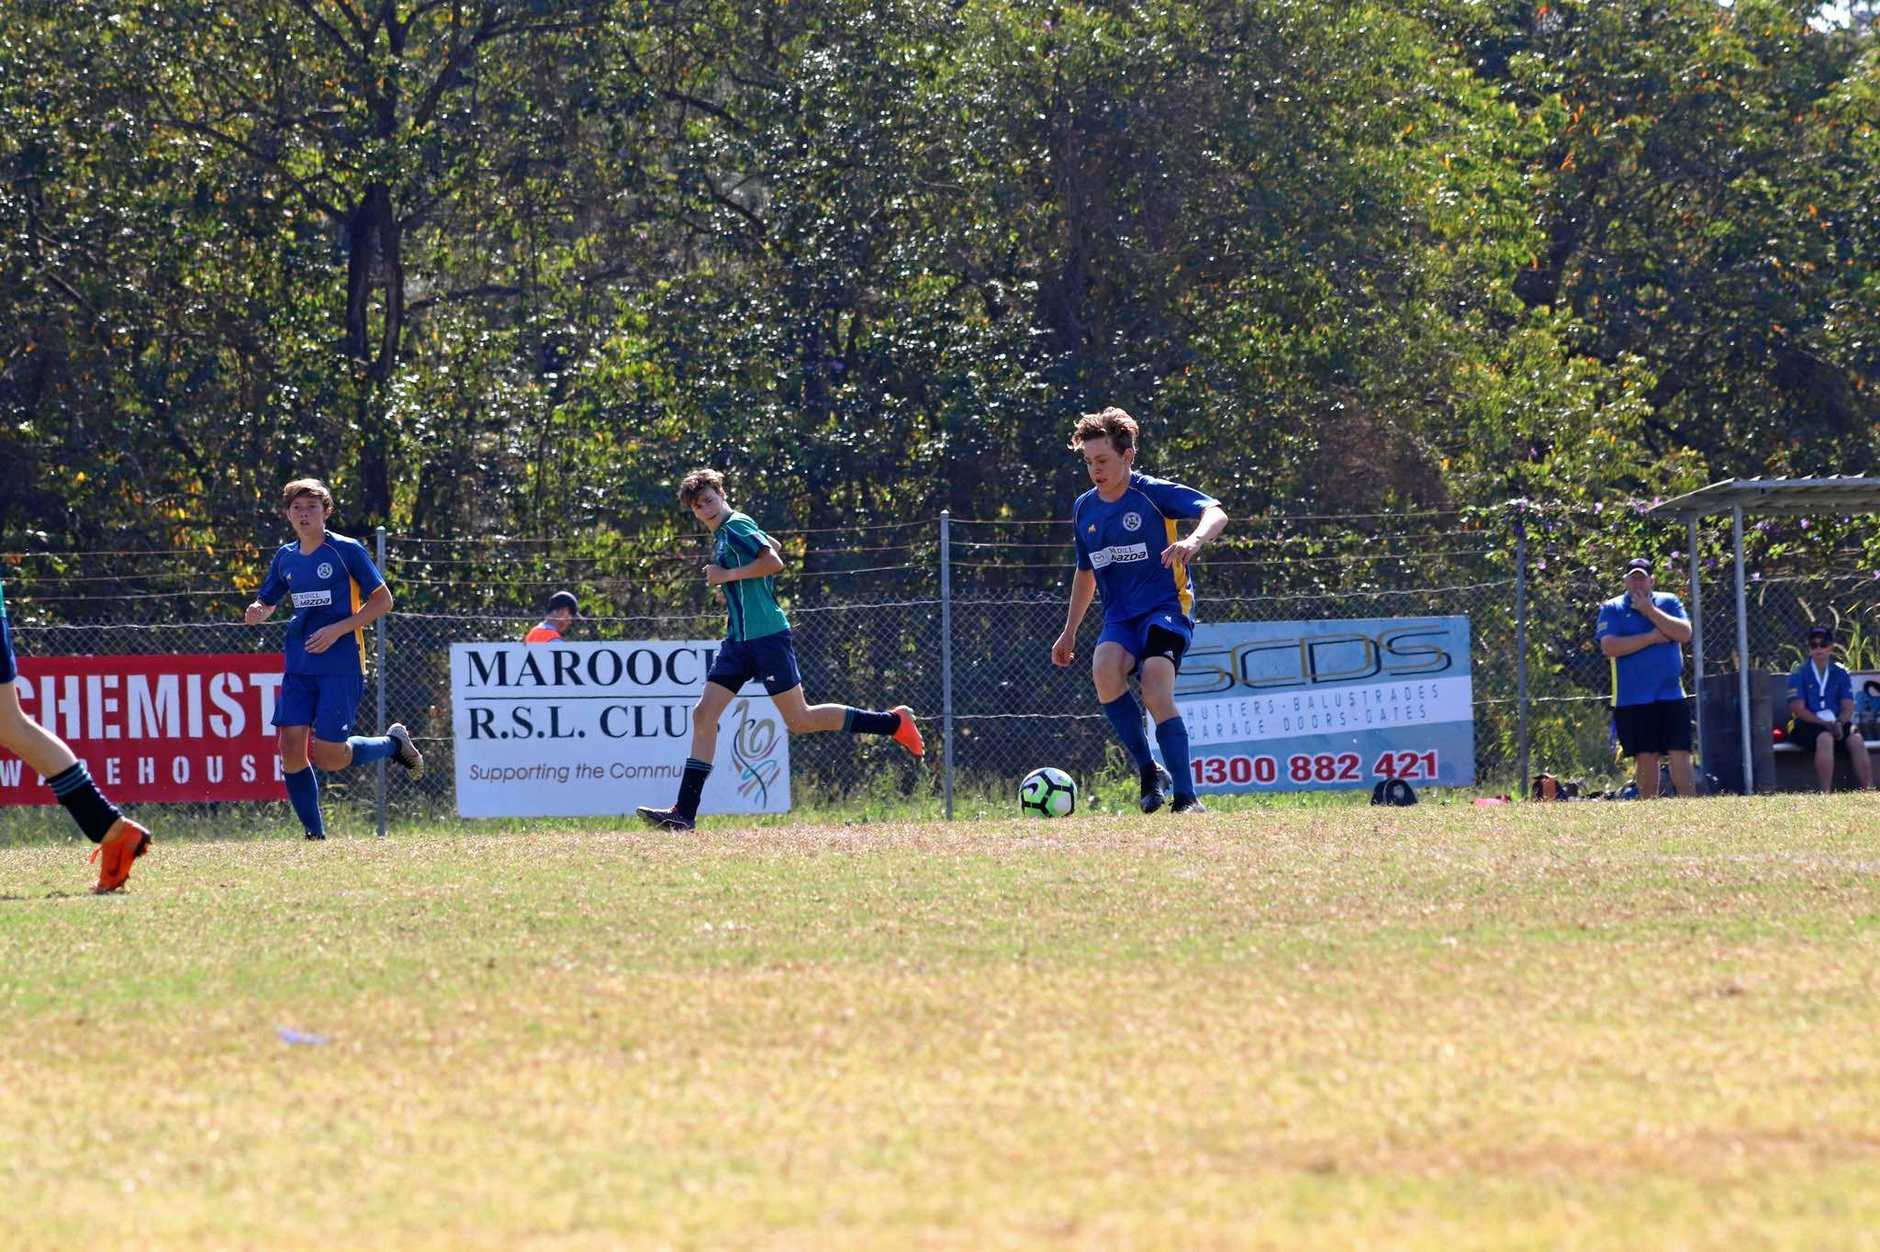 Gympie United Gladiators under-15s  defeat Flinders 2-1 to claim title. Striker/midfielder Jake Millard kicked two goals to get his side over the line.